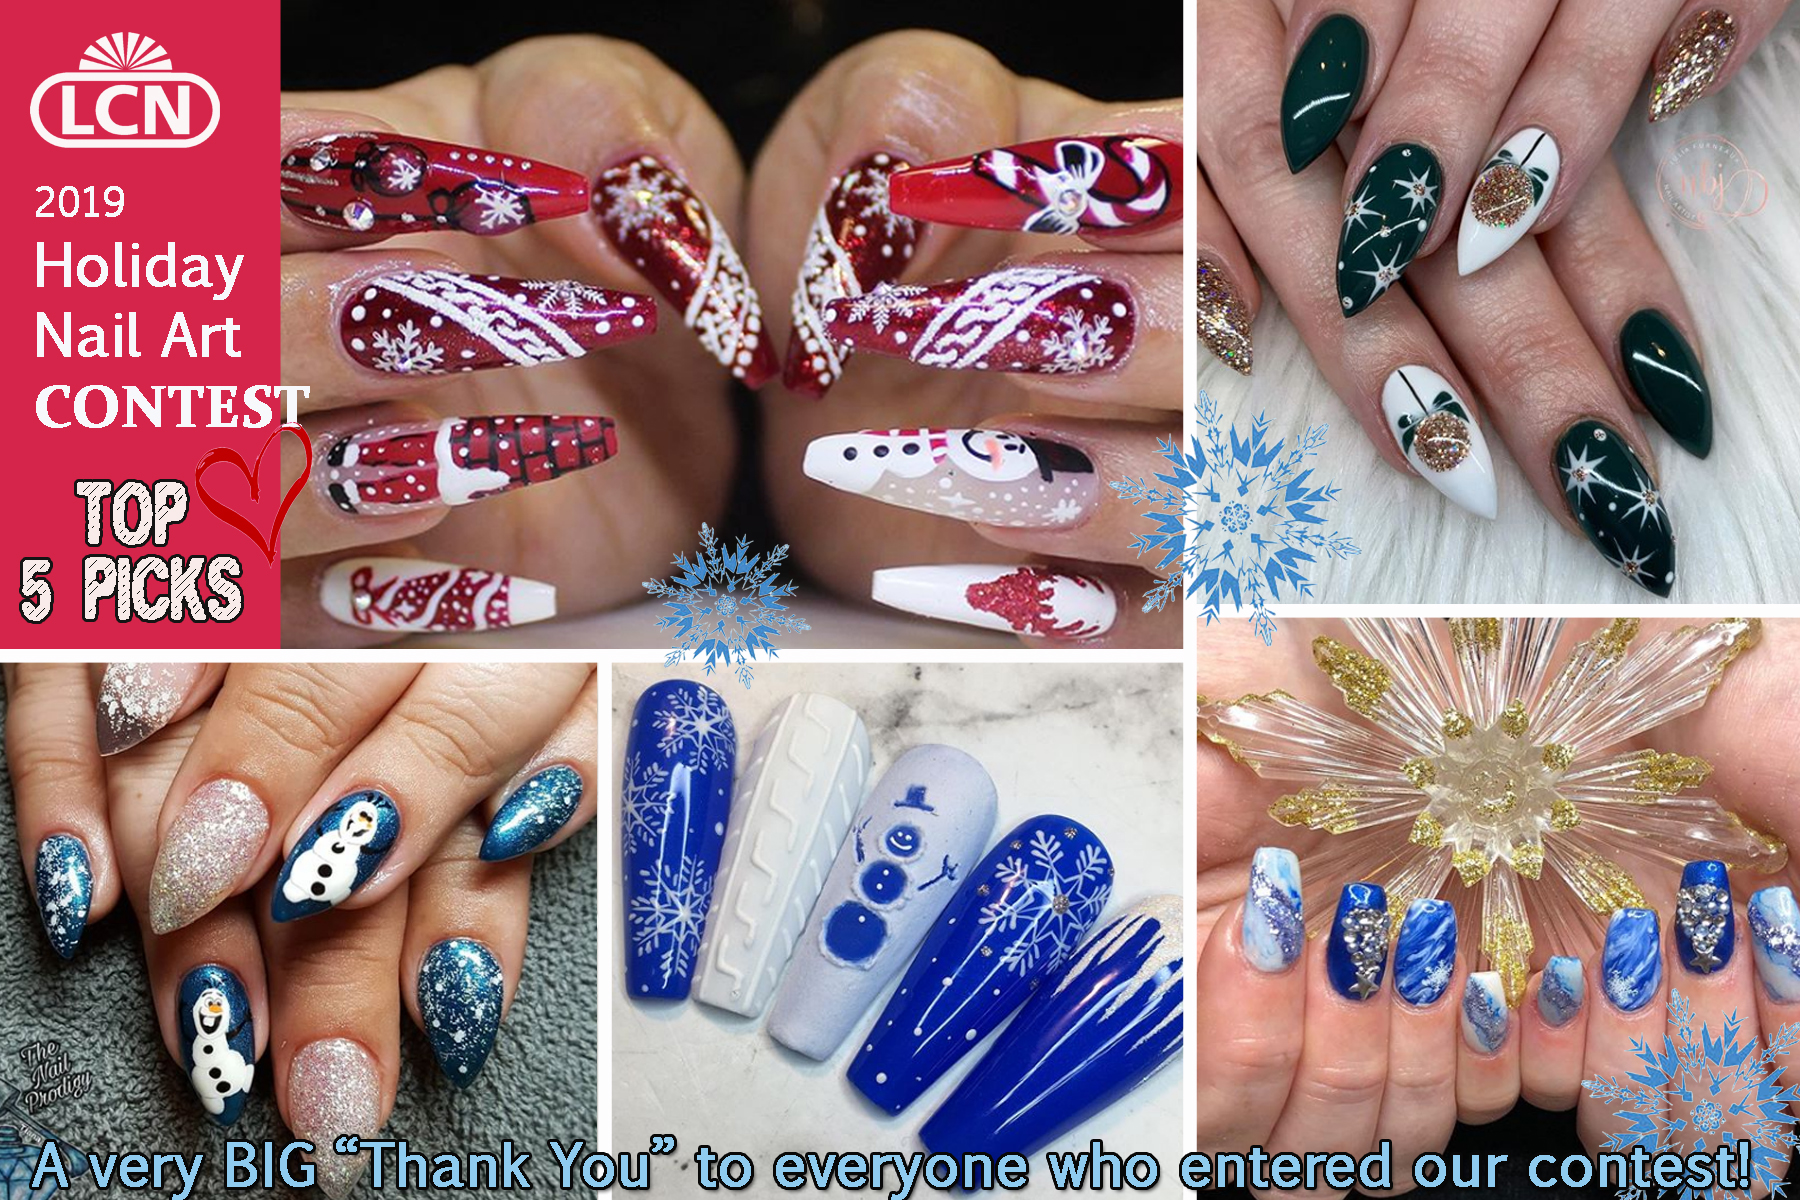 Nail Art Contest Picture for posting